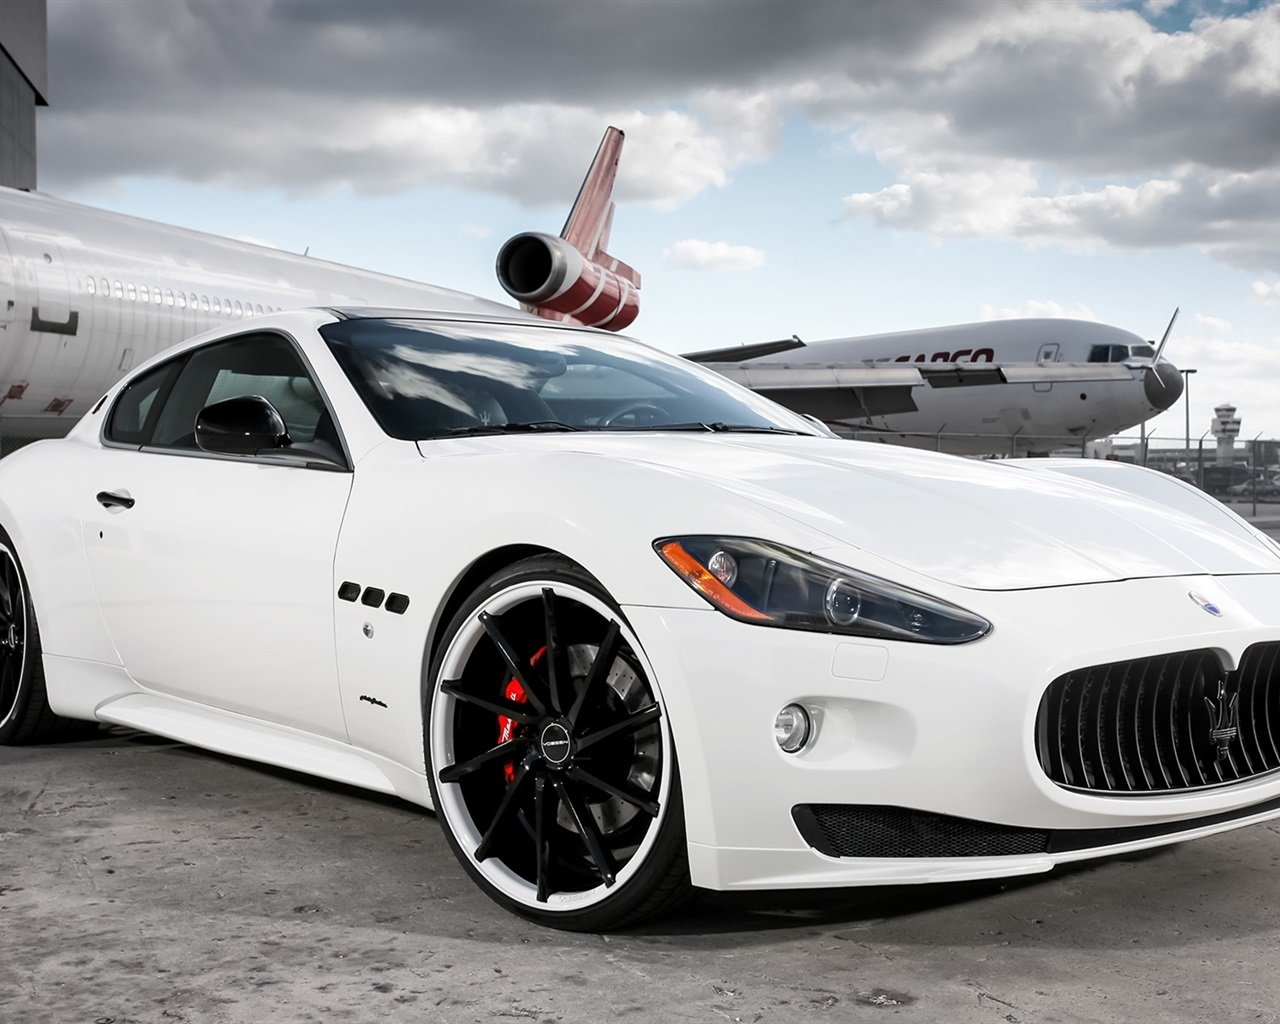 Maserati white supercar Wallpaper 1280x1024 resolution wallpaper 1280x1024